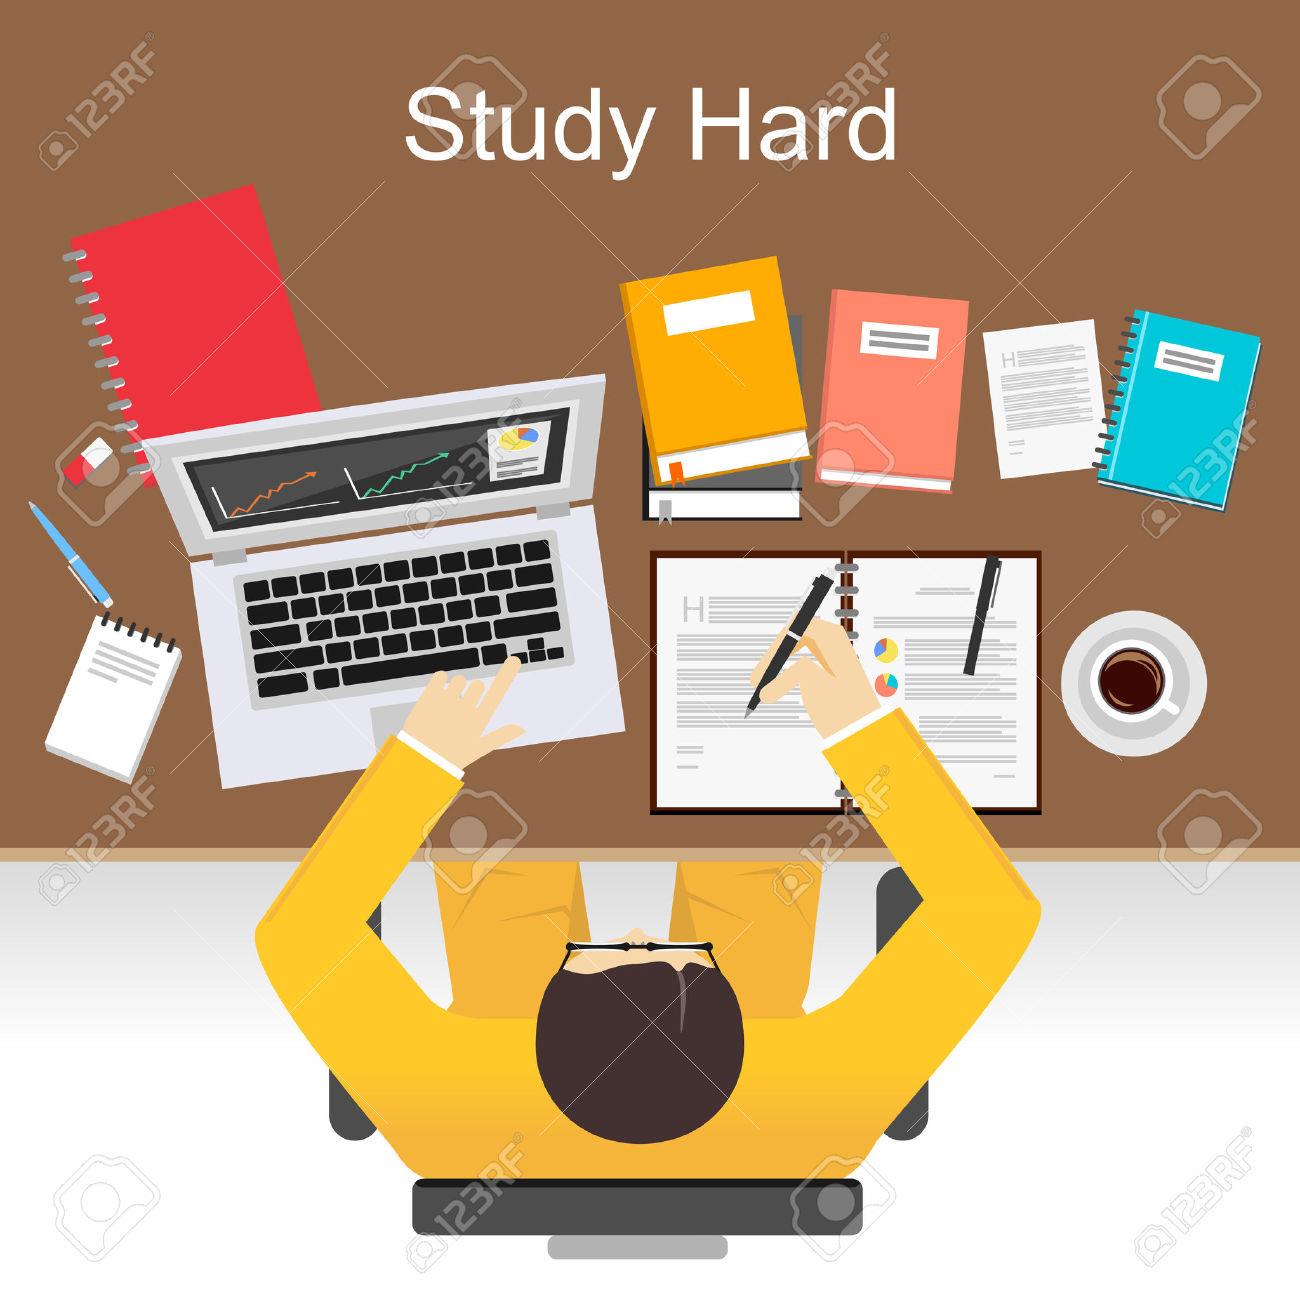 Study Hard Concept Illustration. Flat Design Illustration Concepts.